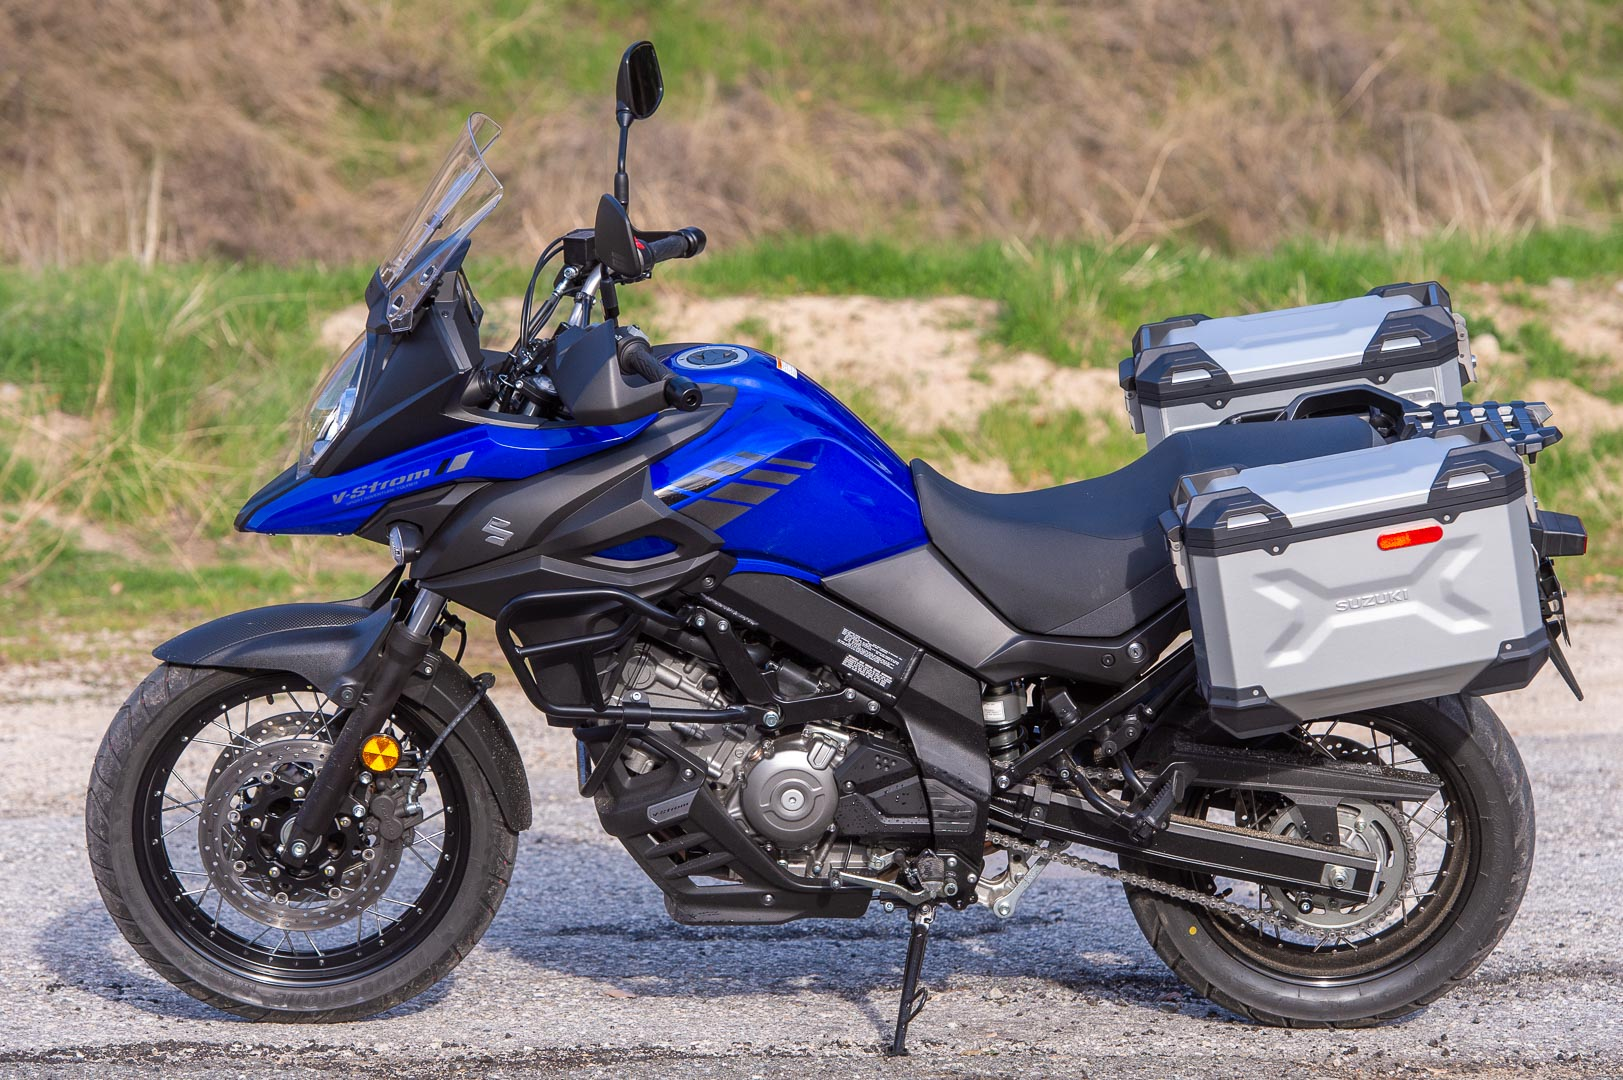 2020 V-Strom 650XT Adventure seat height